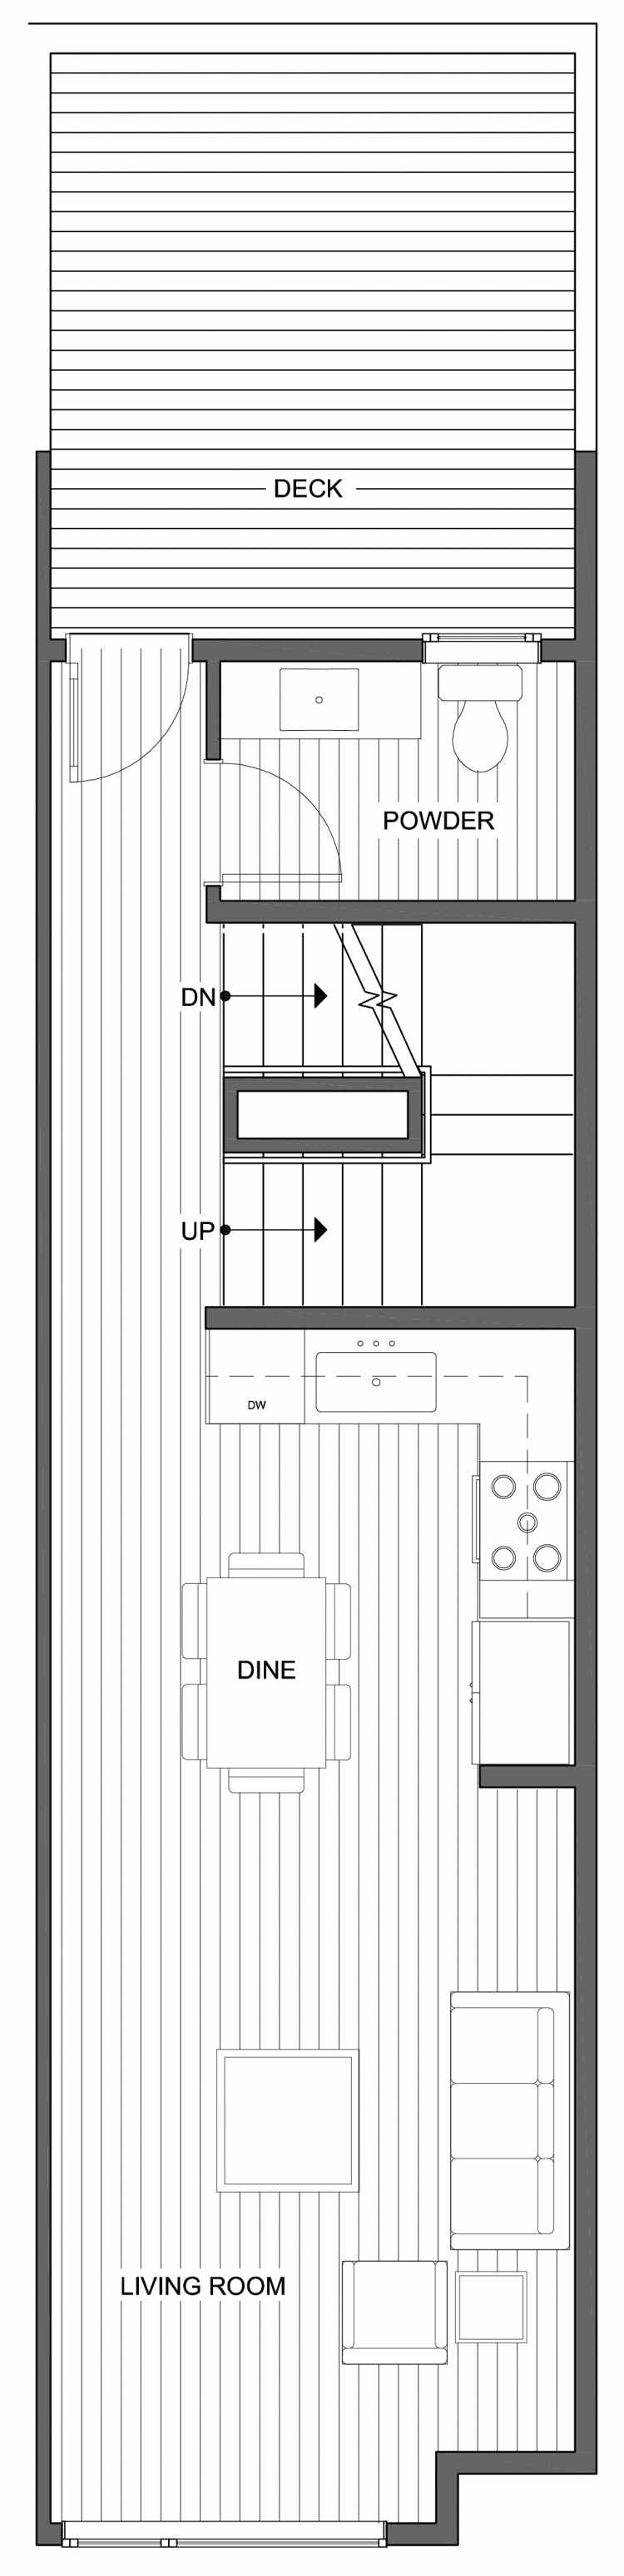 Third Floor Plan of 804 N 46th St, One of the Nino 15 West Townhomes in Fremont by Isola Homes